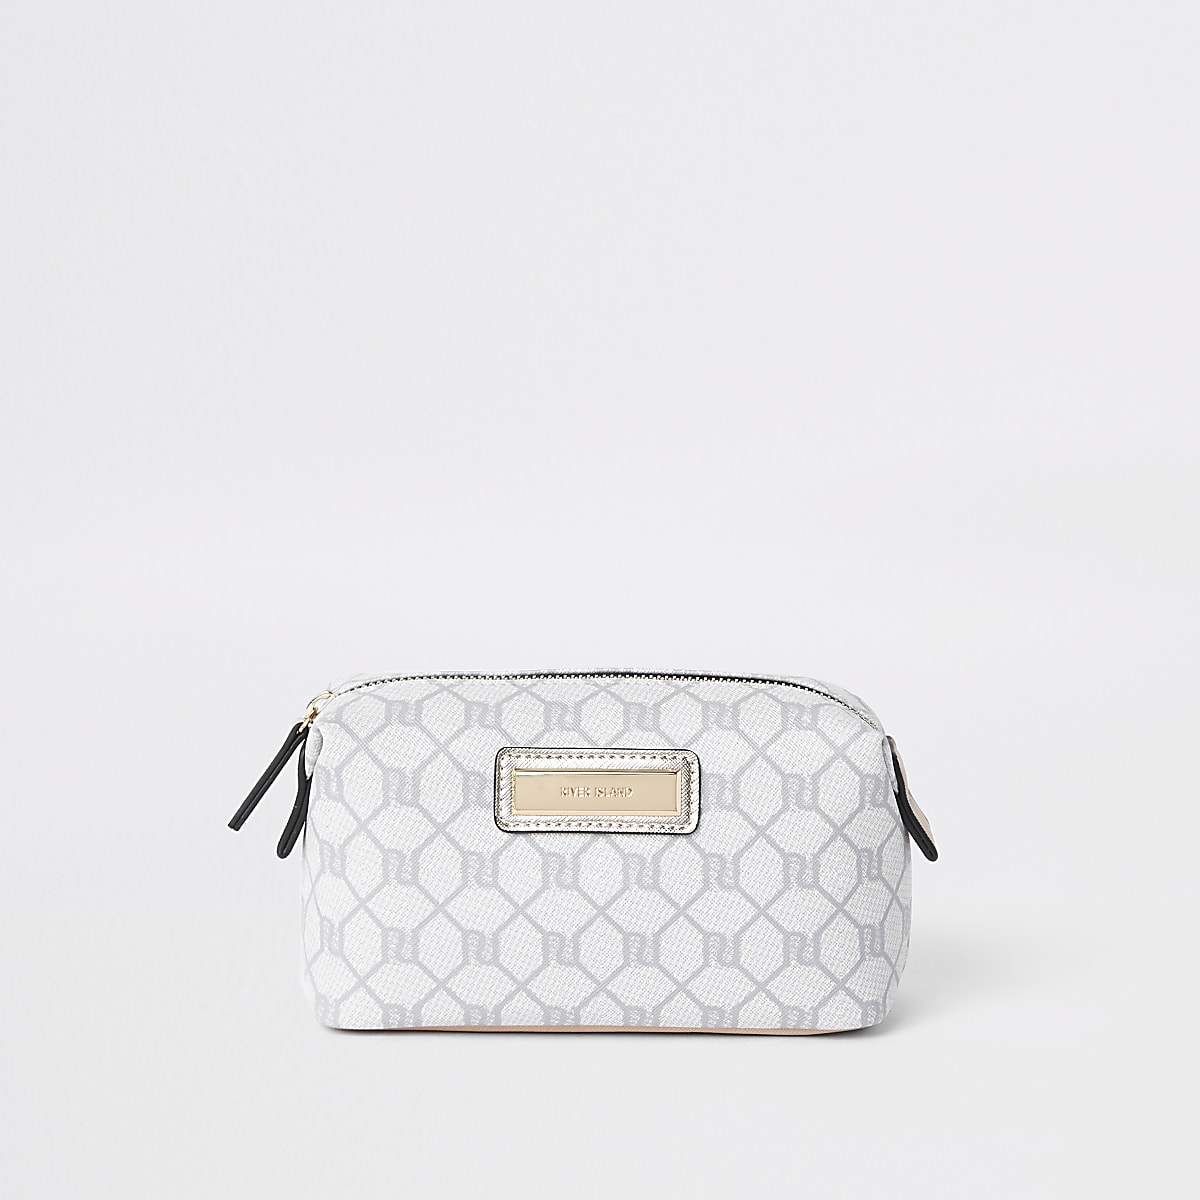 Beige RI monogram makeup bag